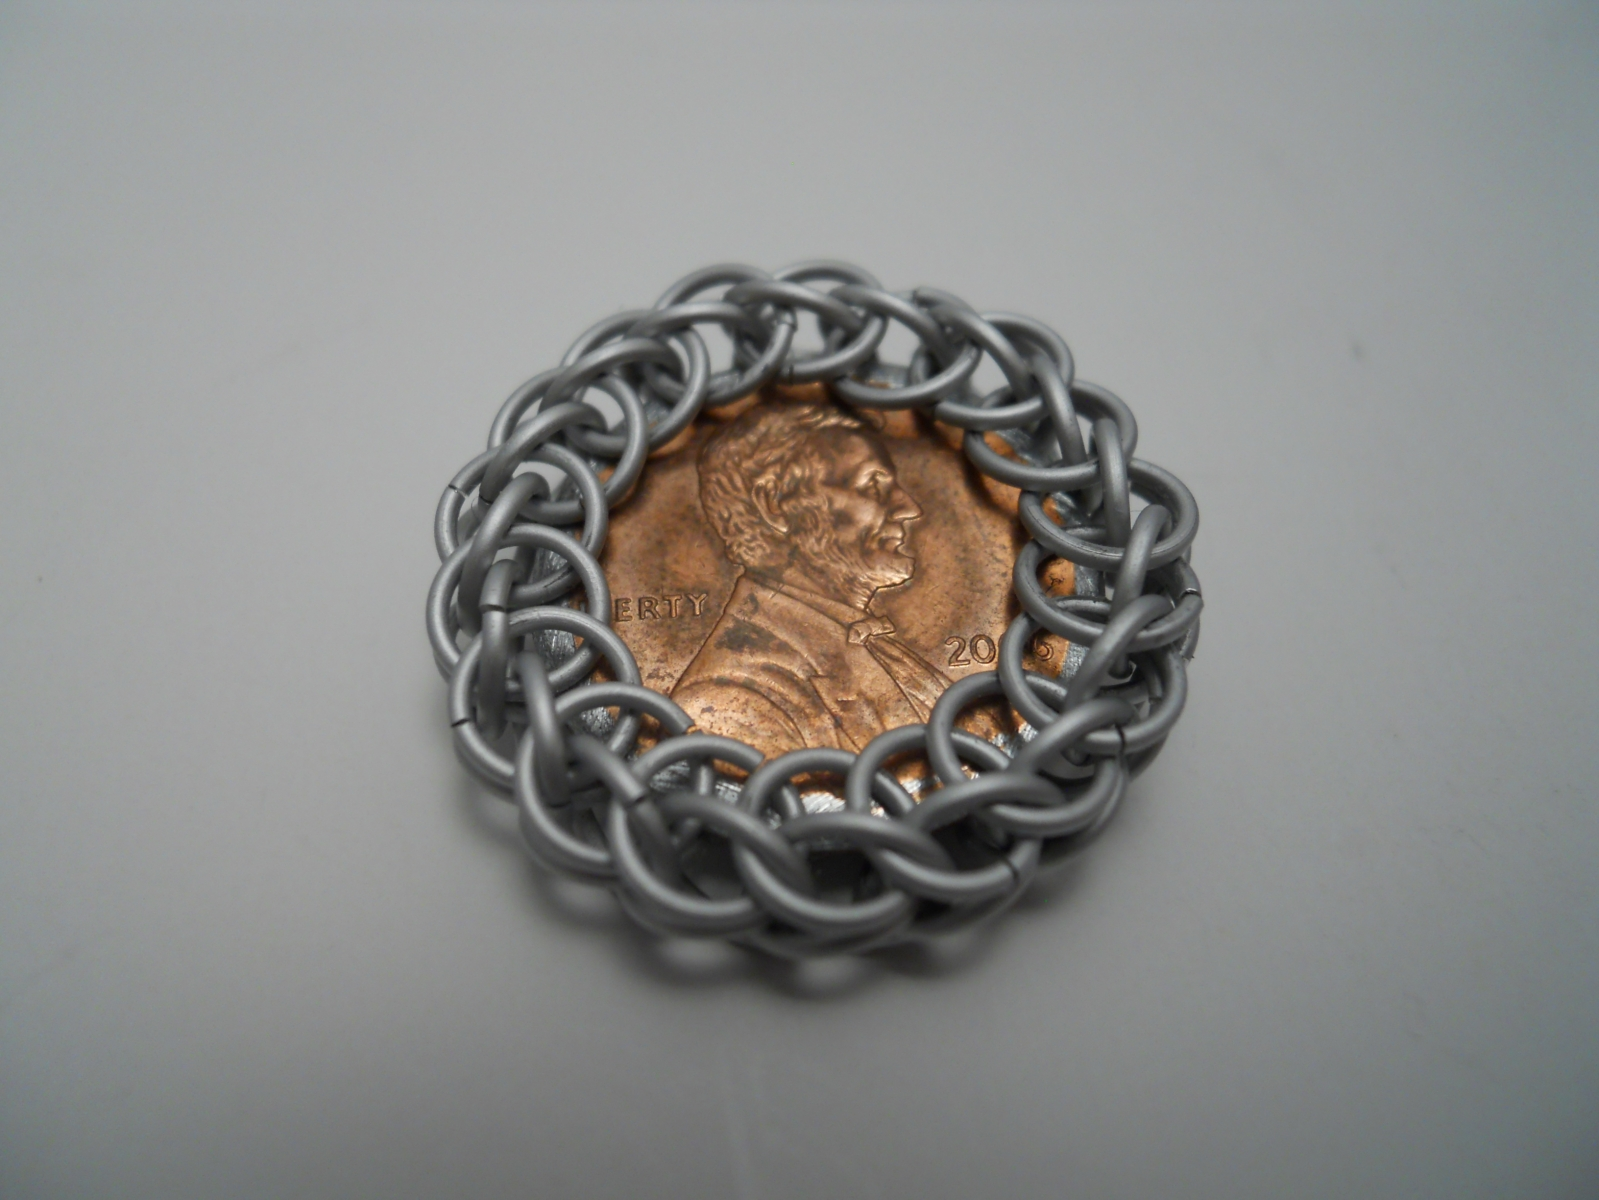 3/4 Persian wrapped penny